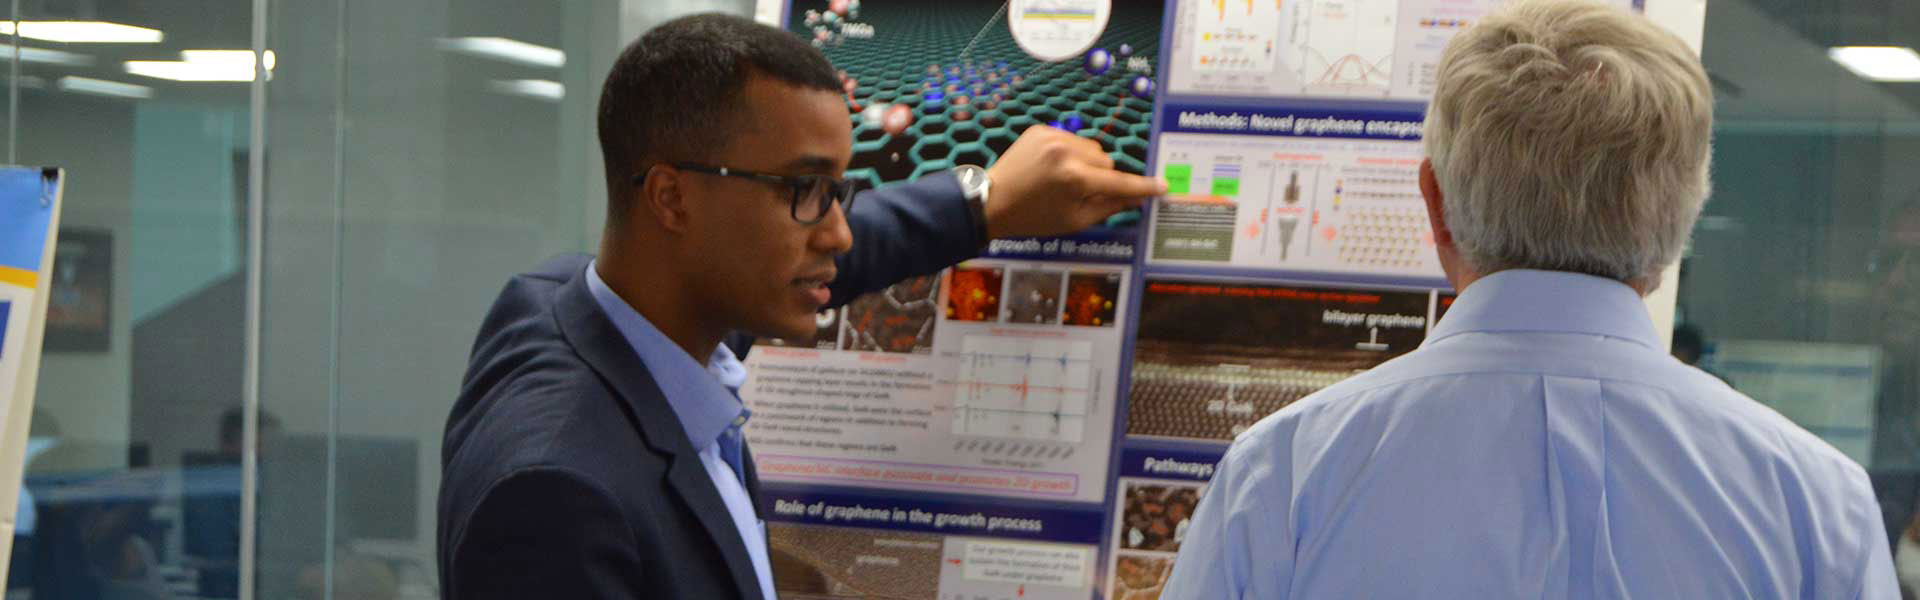 Graduate poster competition